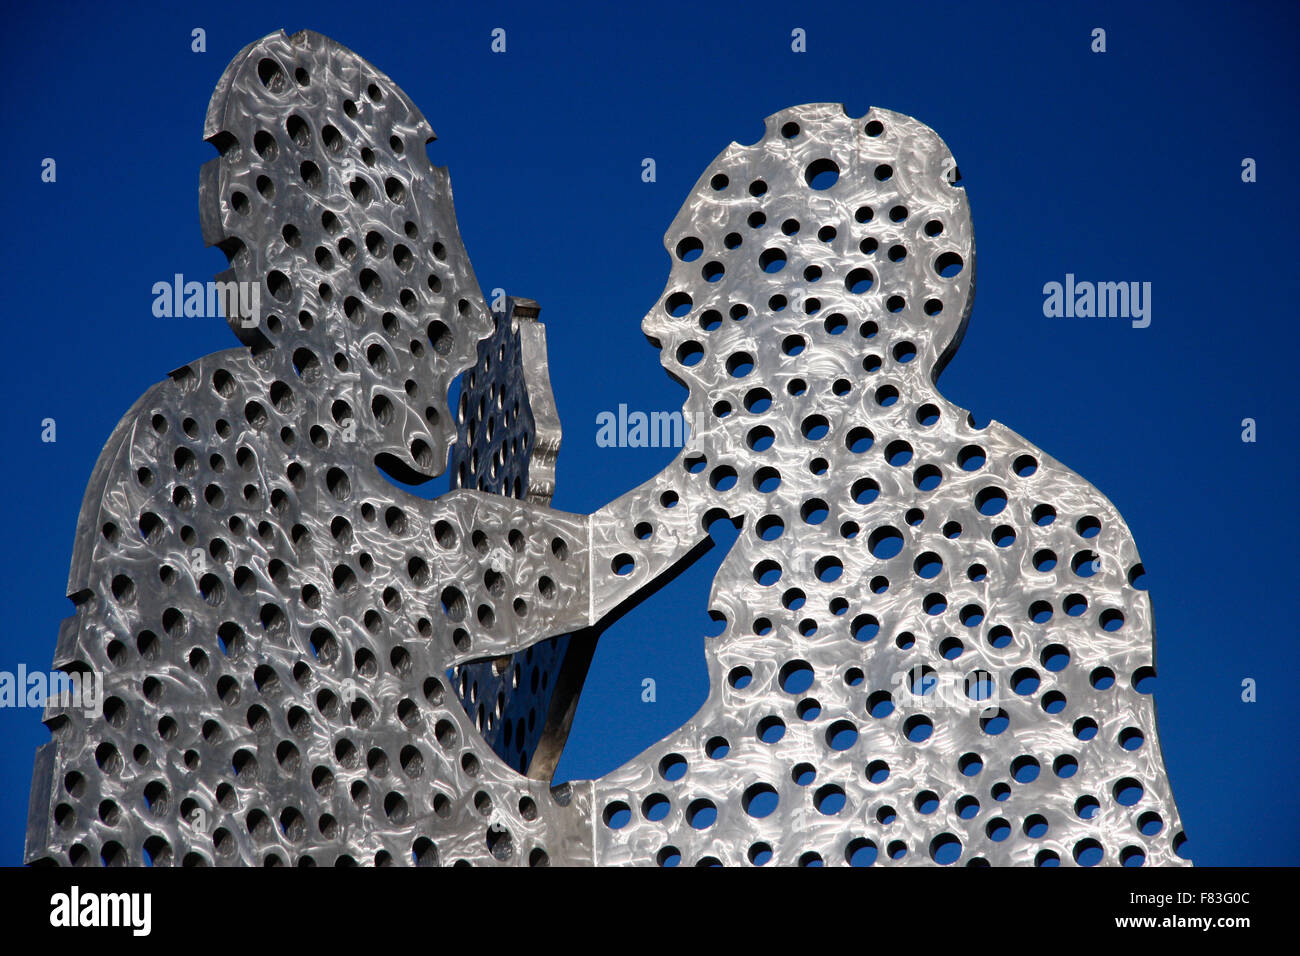 Molecular Men, Spree, Berlin-Treptow. - Stock Image